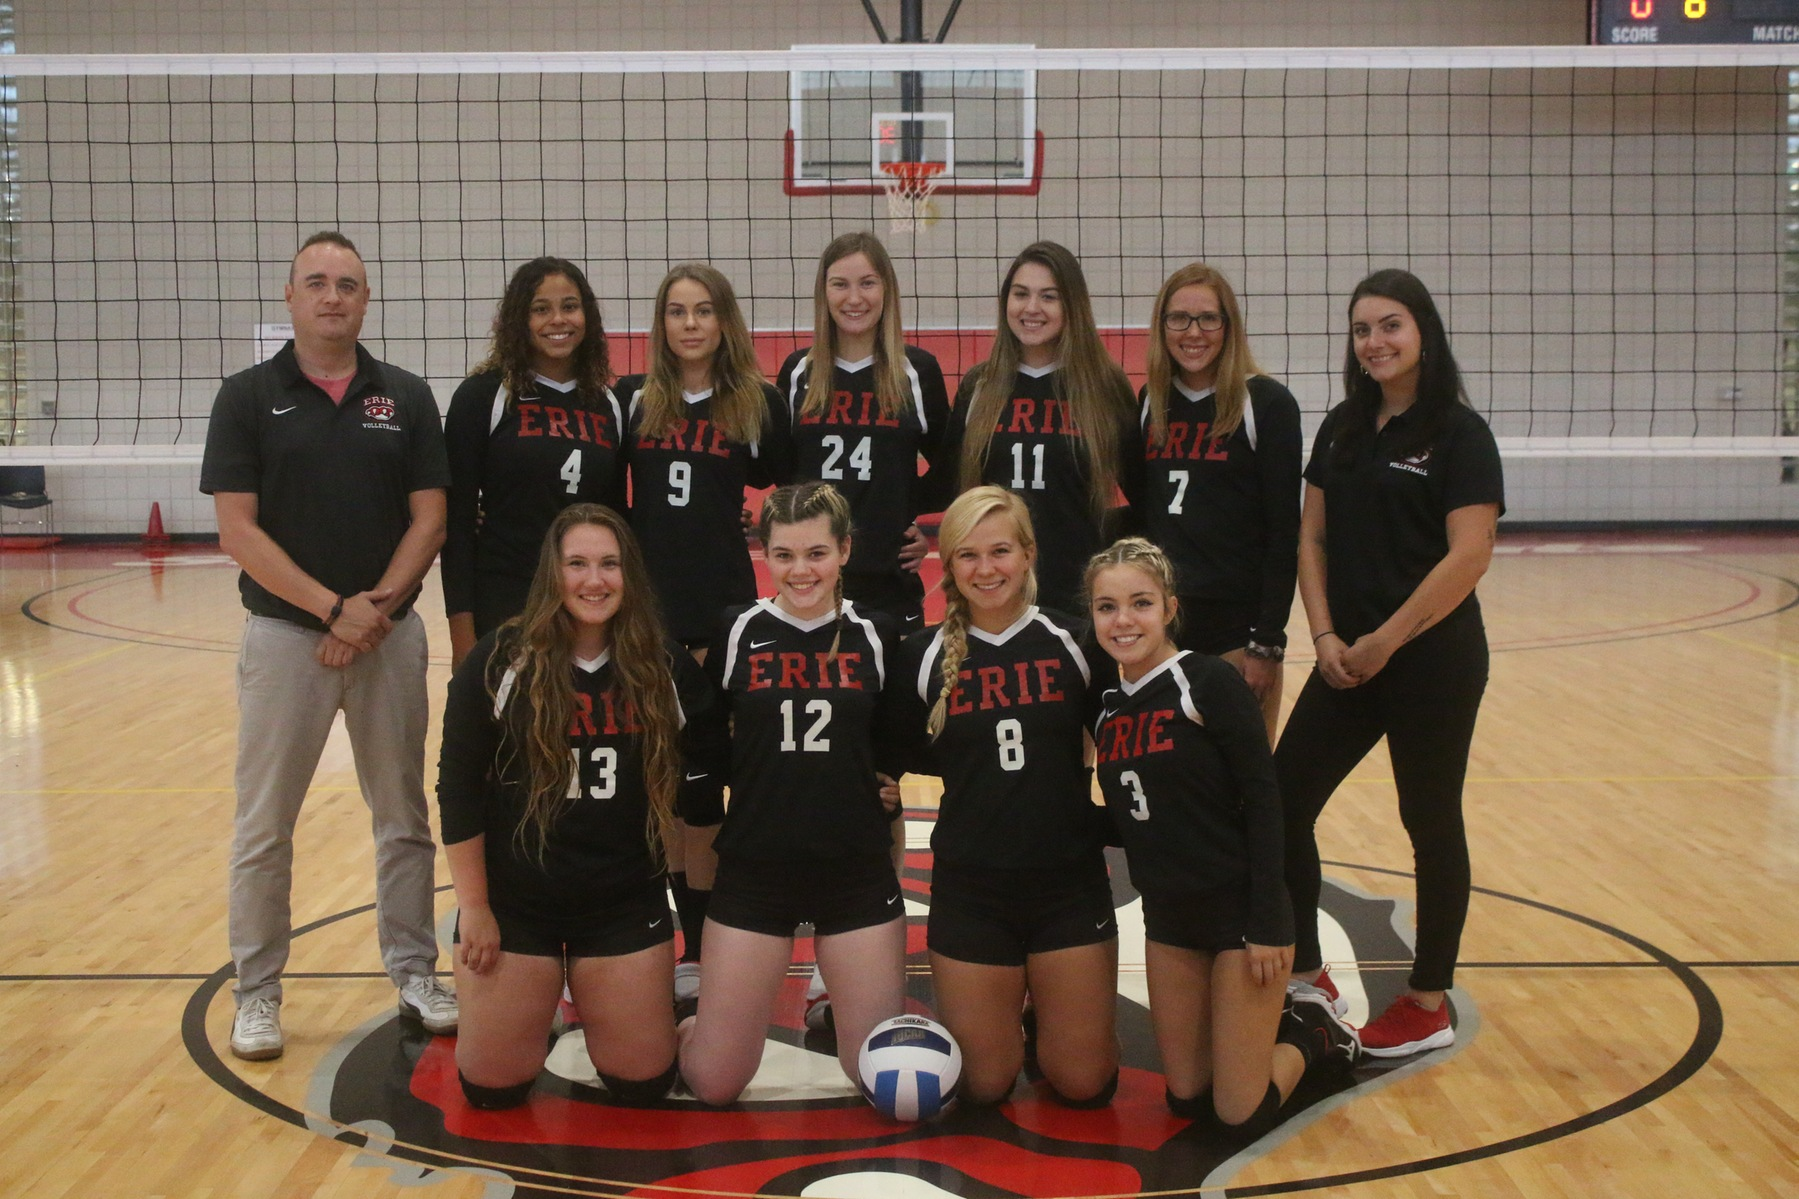 Women's Volleyball goes 1-2 in POD Play